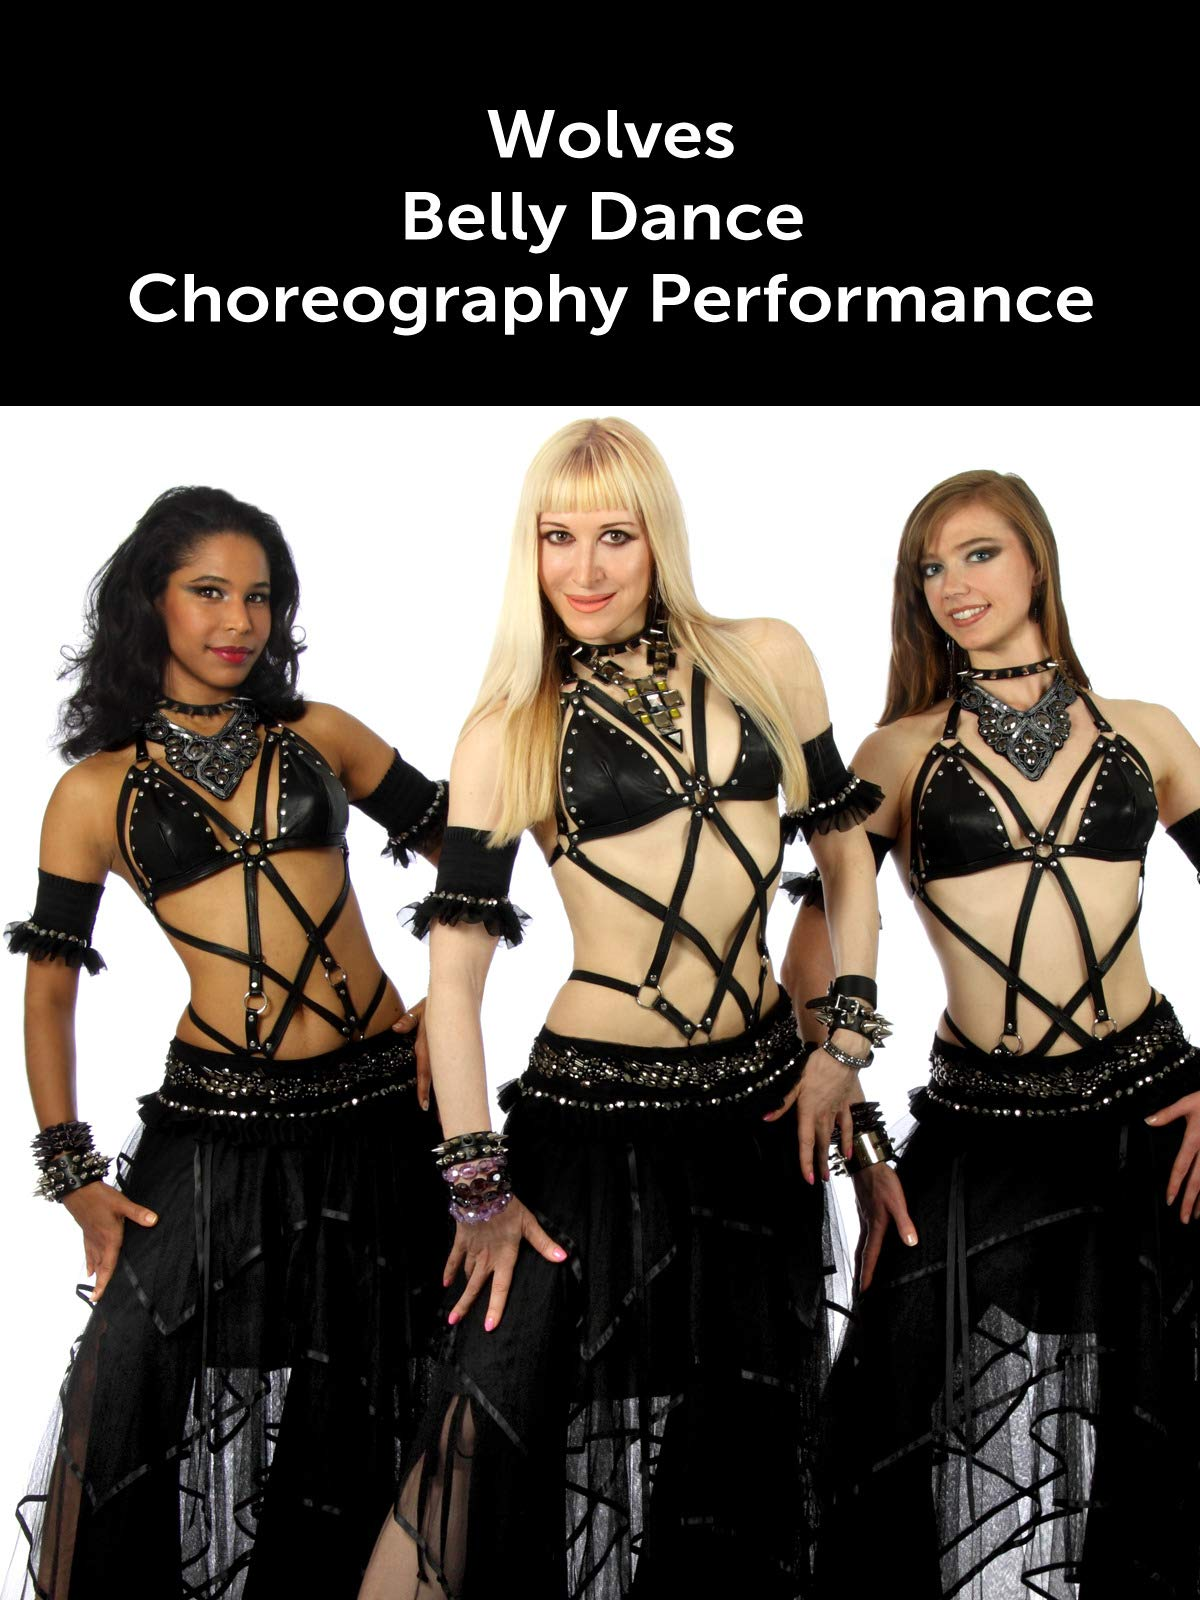 Wolves - Belly Dance Choreography Performance on Amazon Prime Video UK